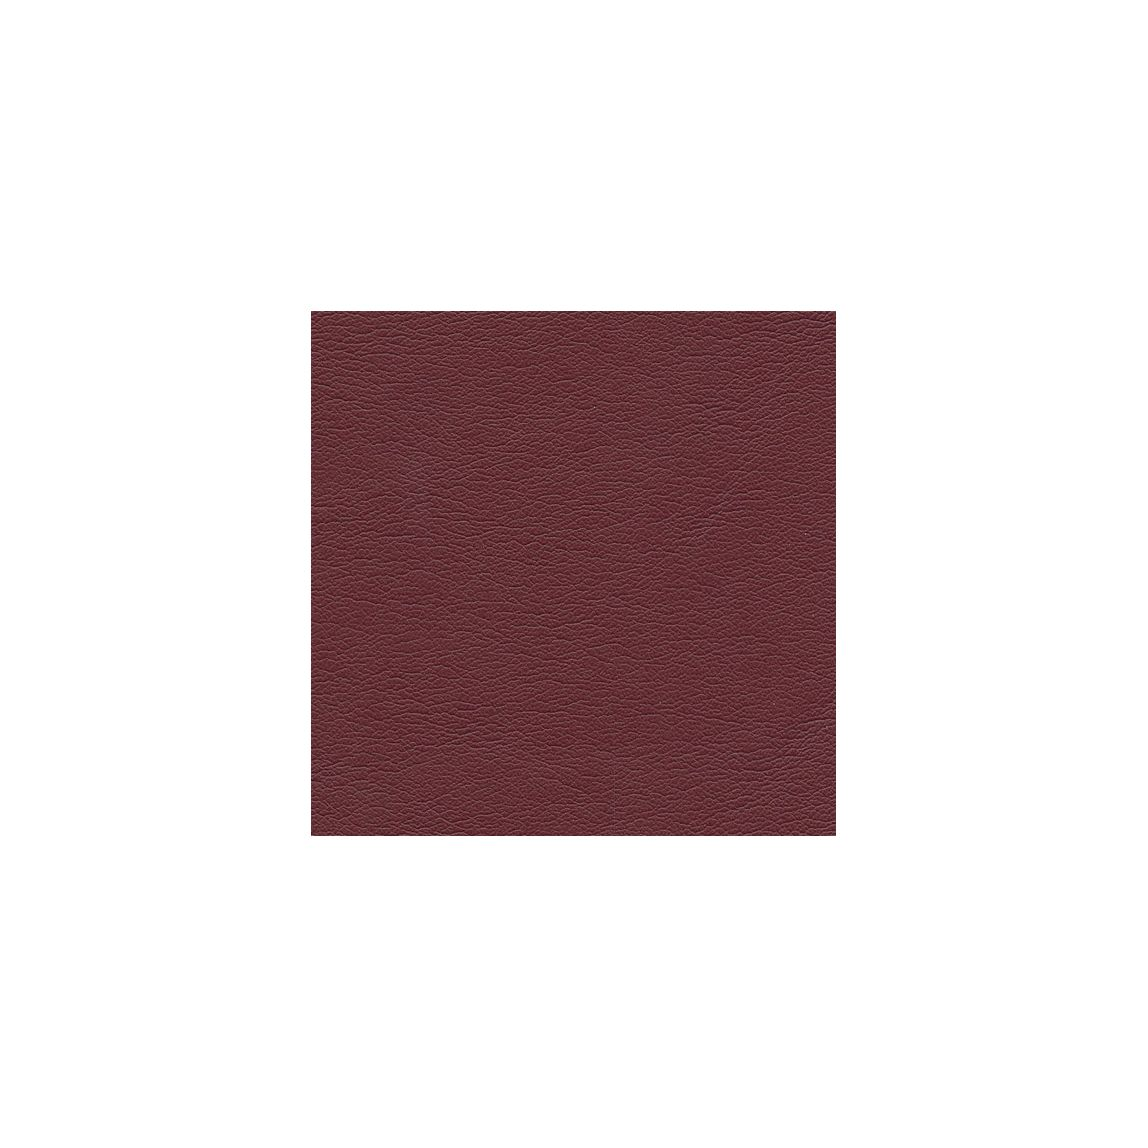 Ultraleather Pro Cranberry Swatch